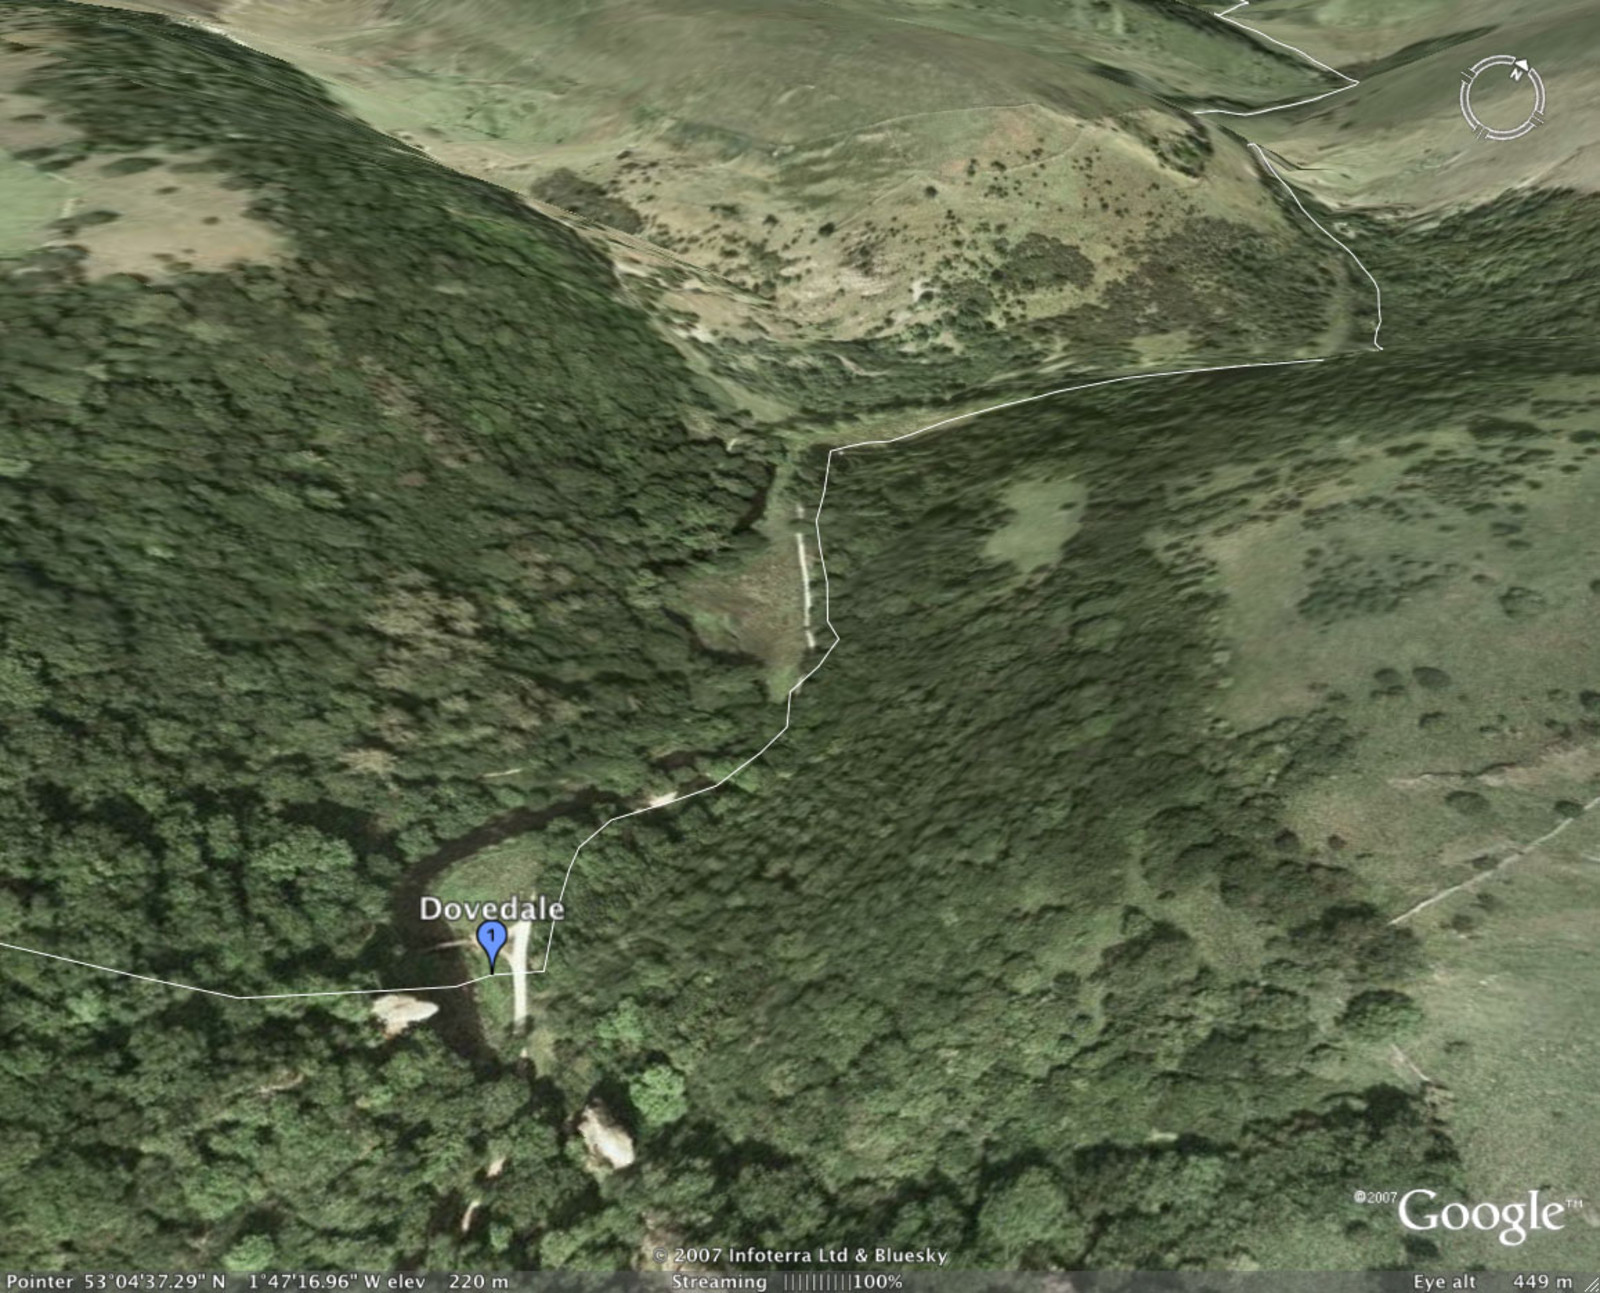 Google Earth showing a close-up of Dovedale